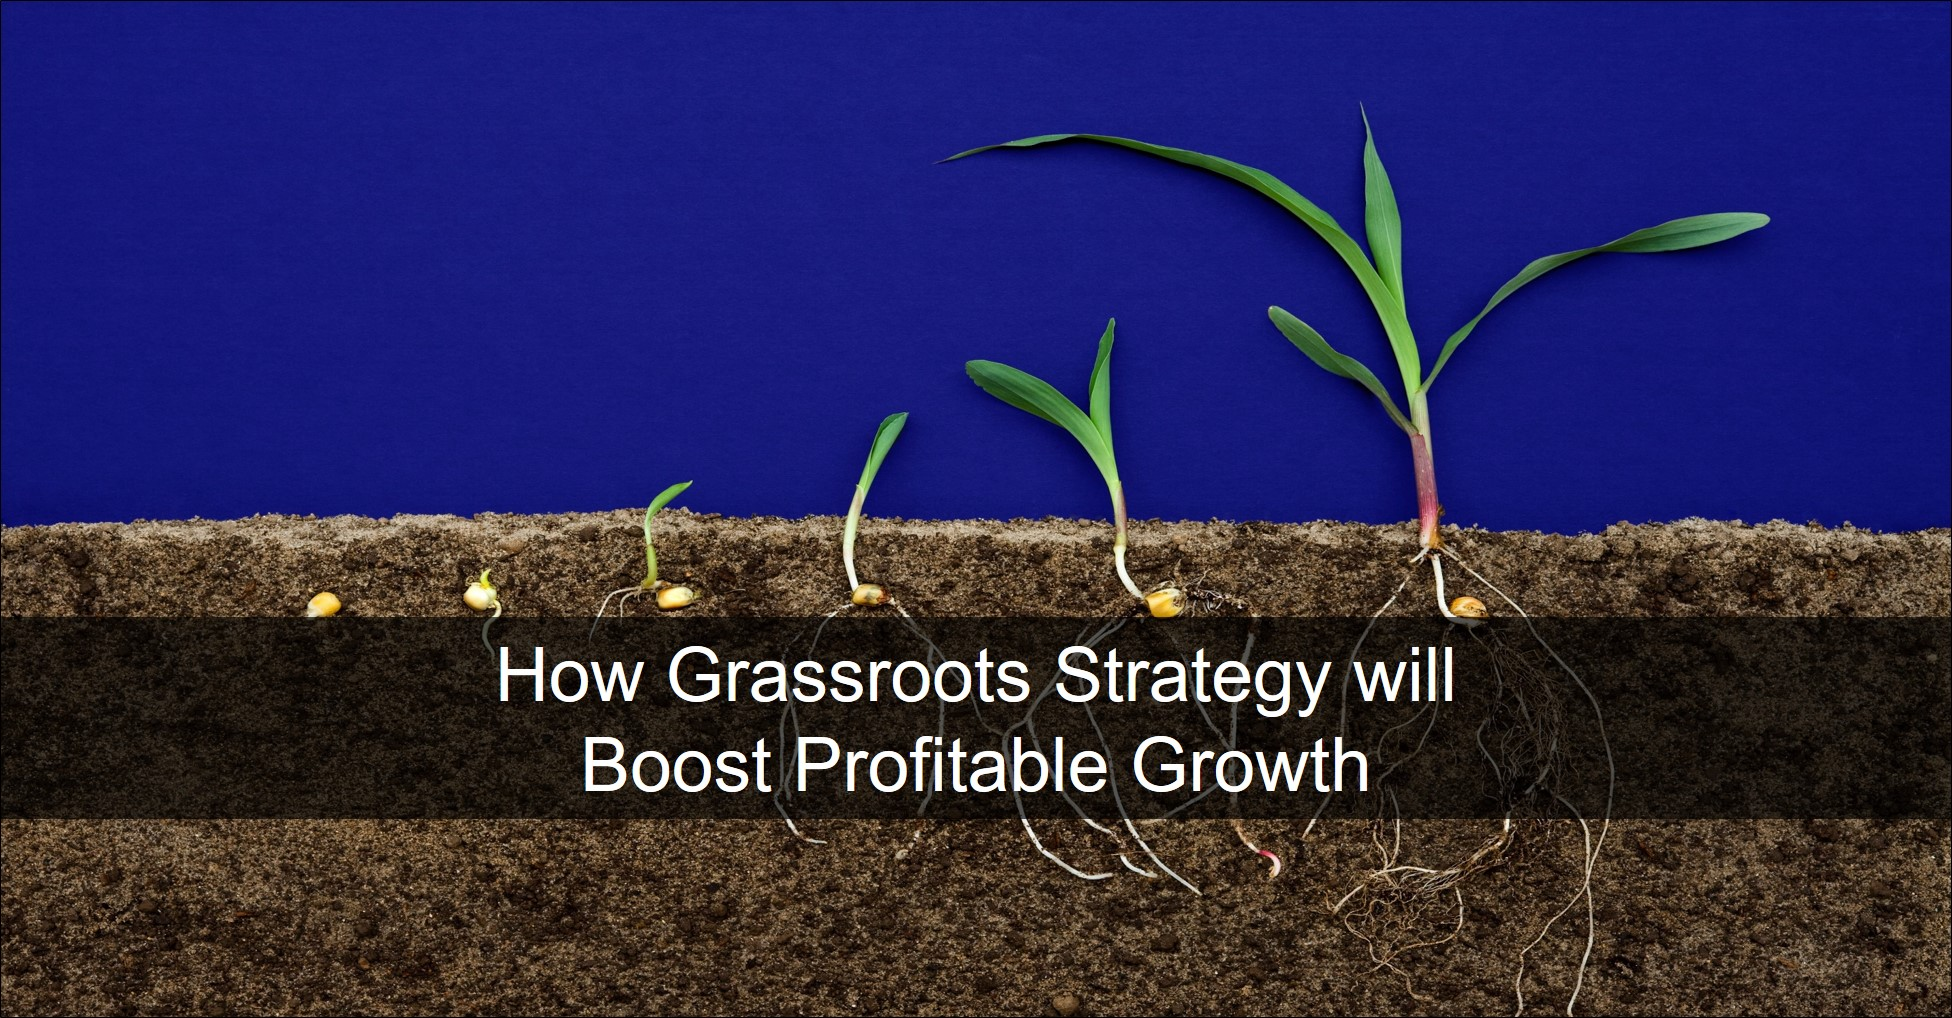 Blog 20190925 - Grassroots Strategy